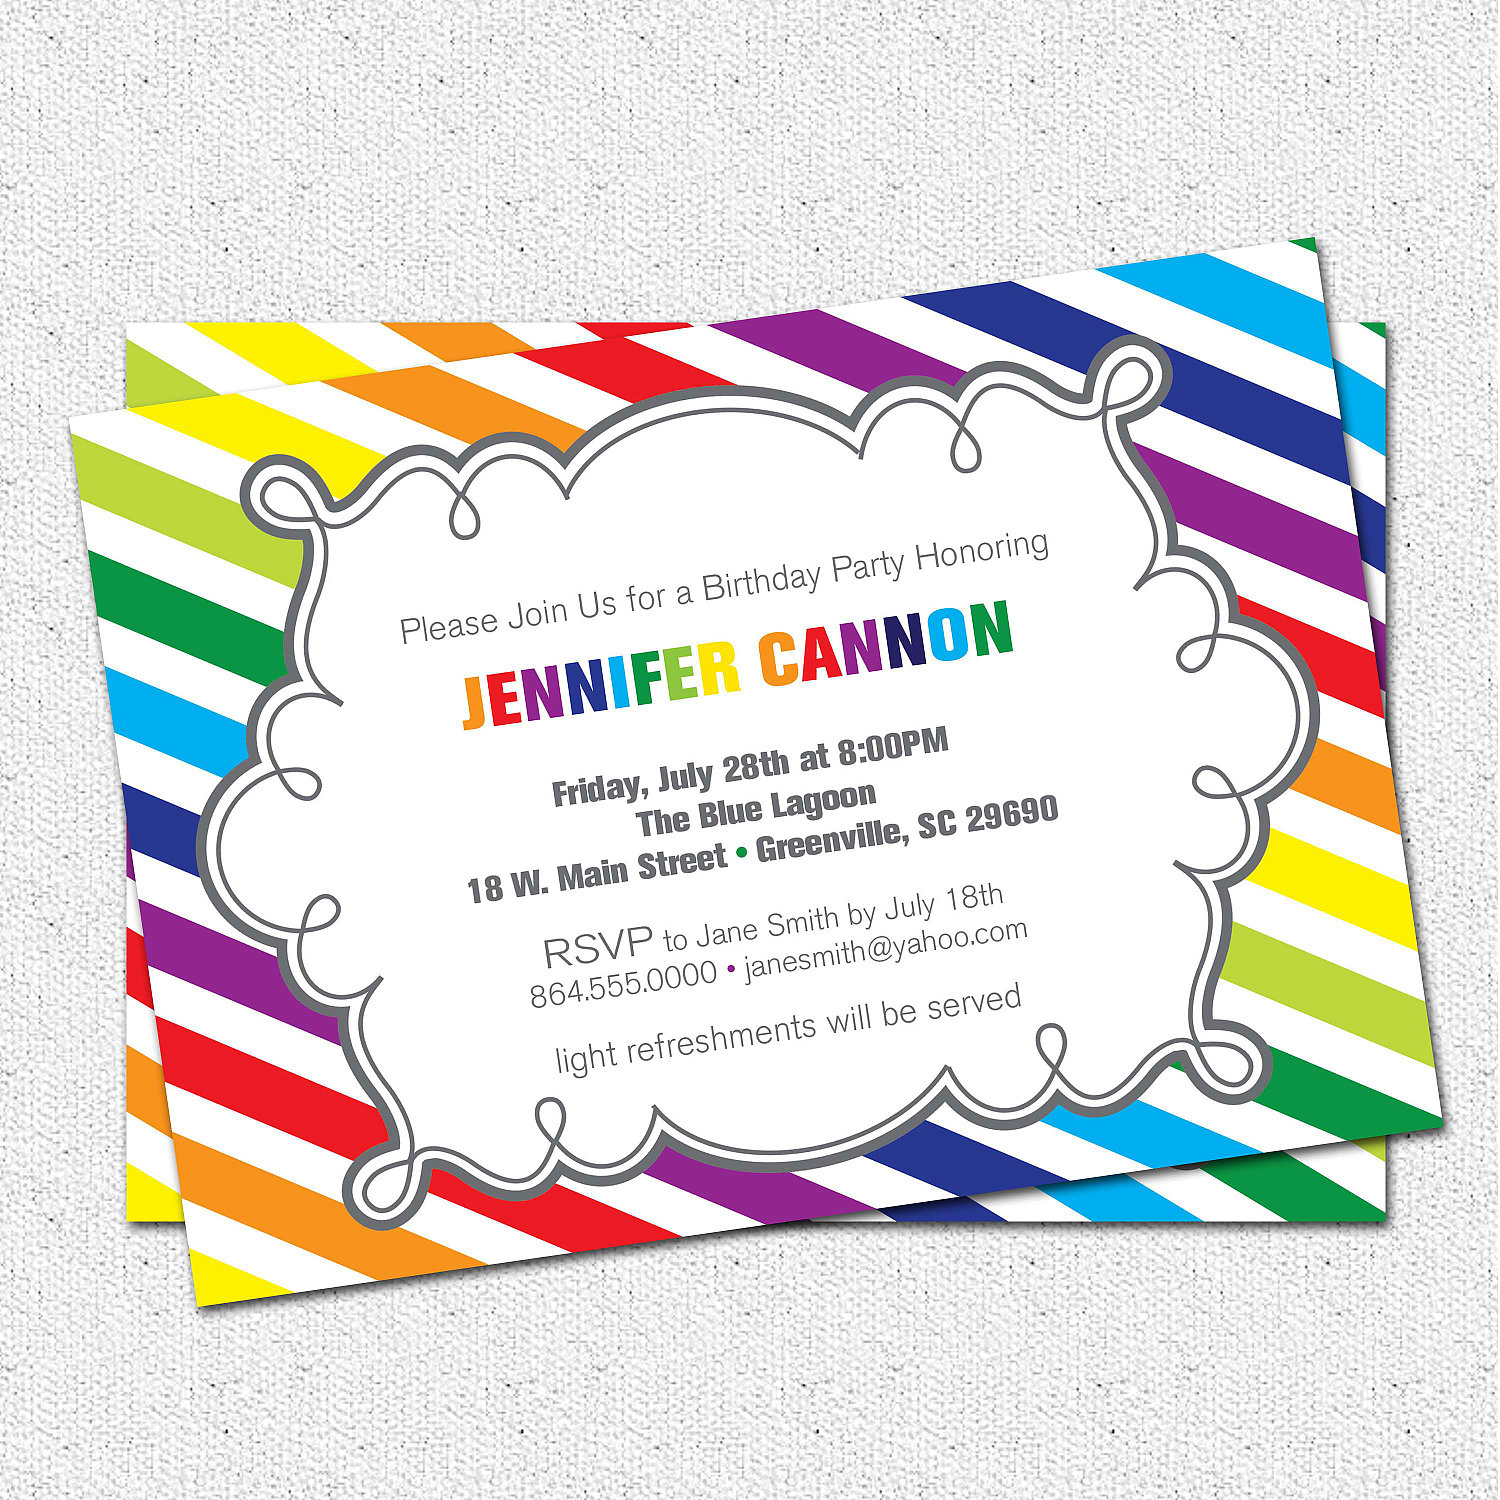 Birthday Party Invitations Girl Rainbow Colorful Modern Diagonal